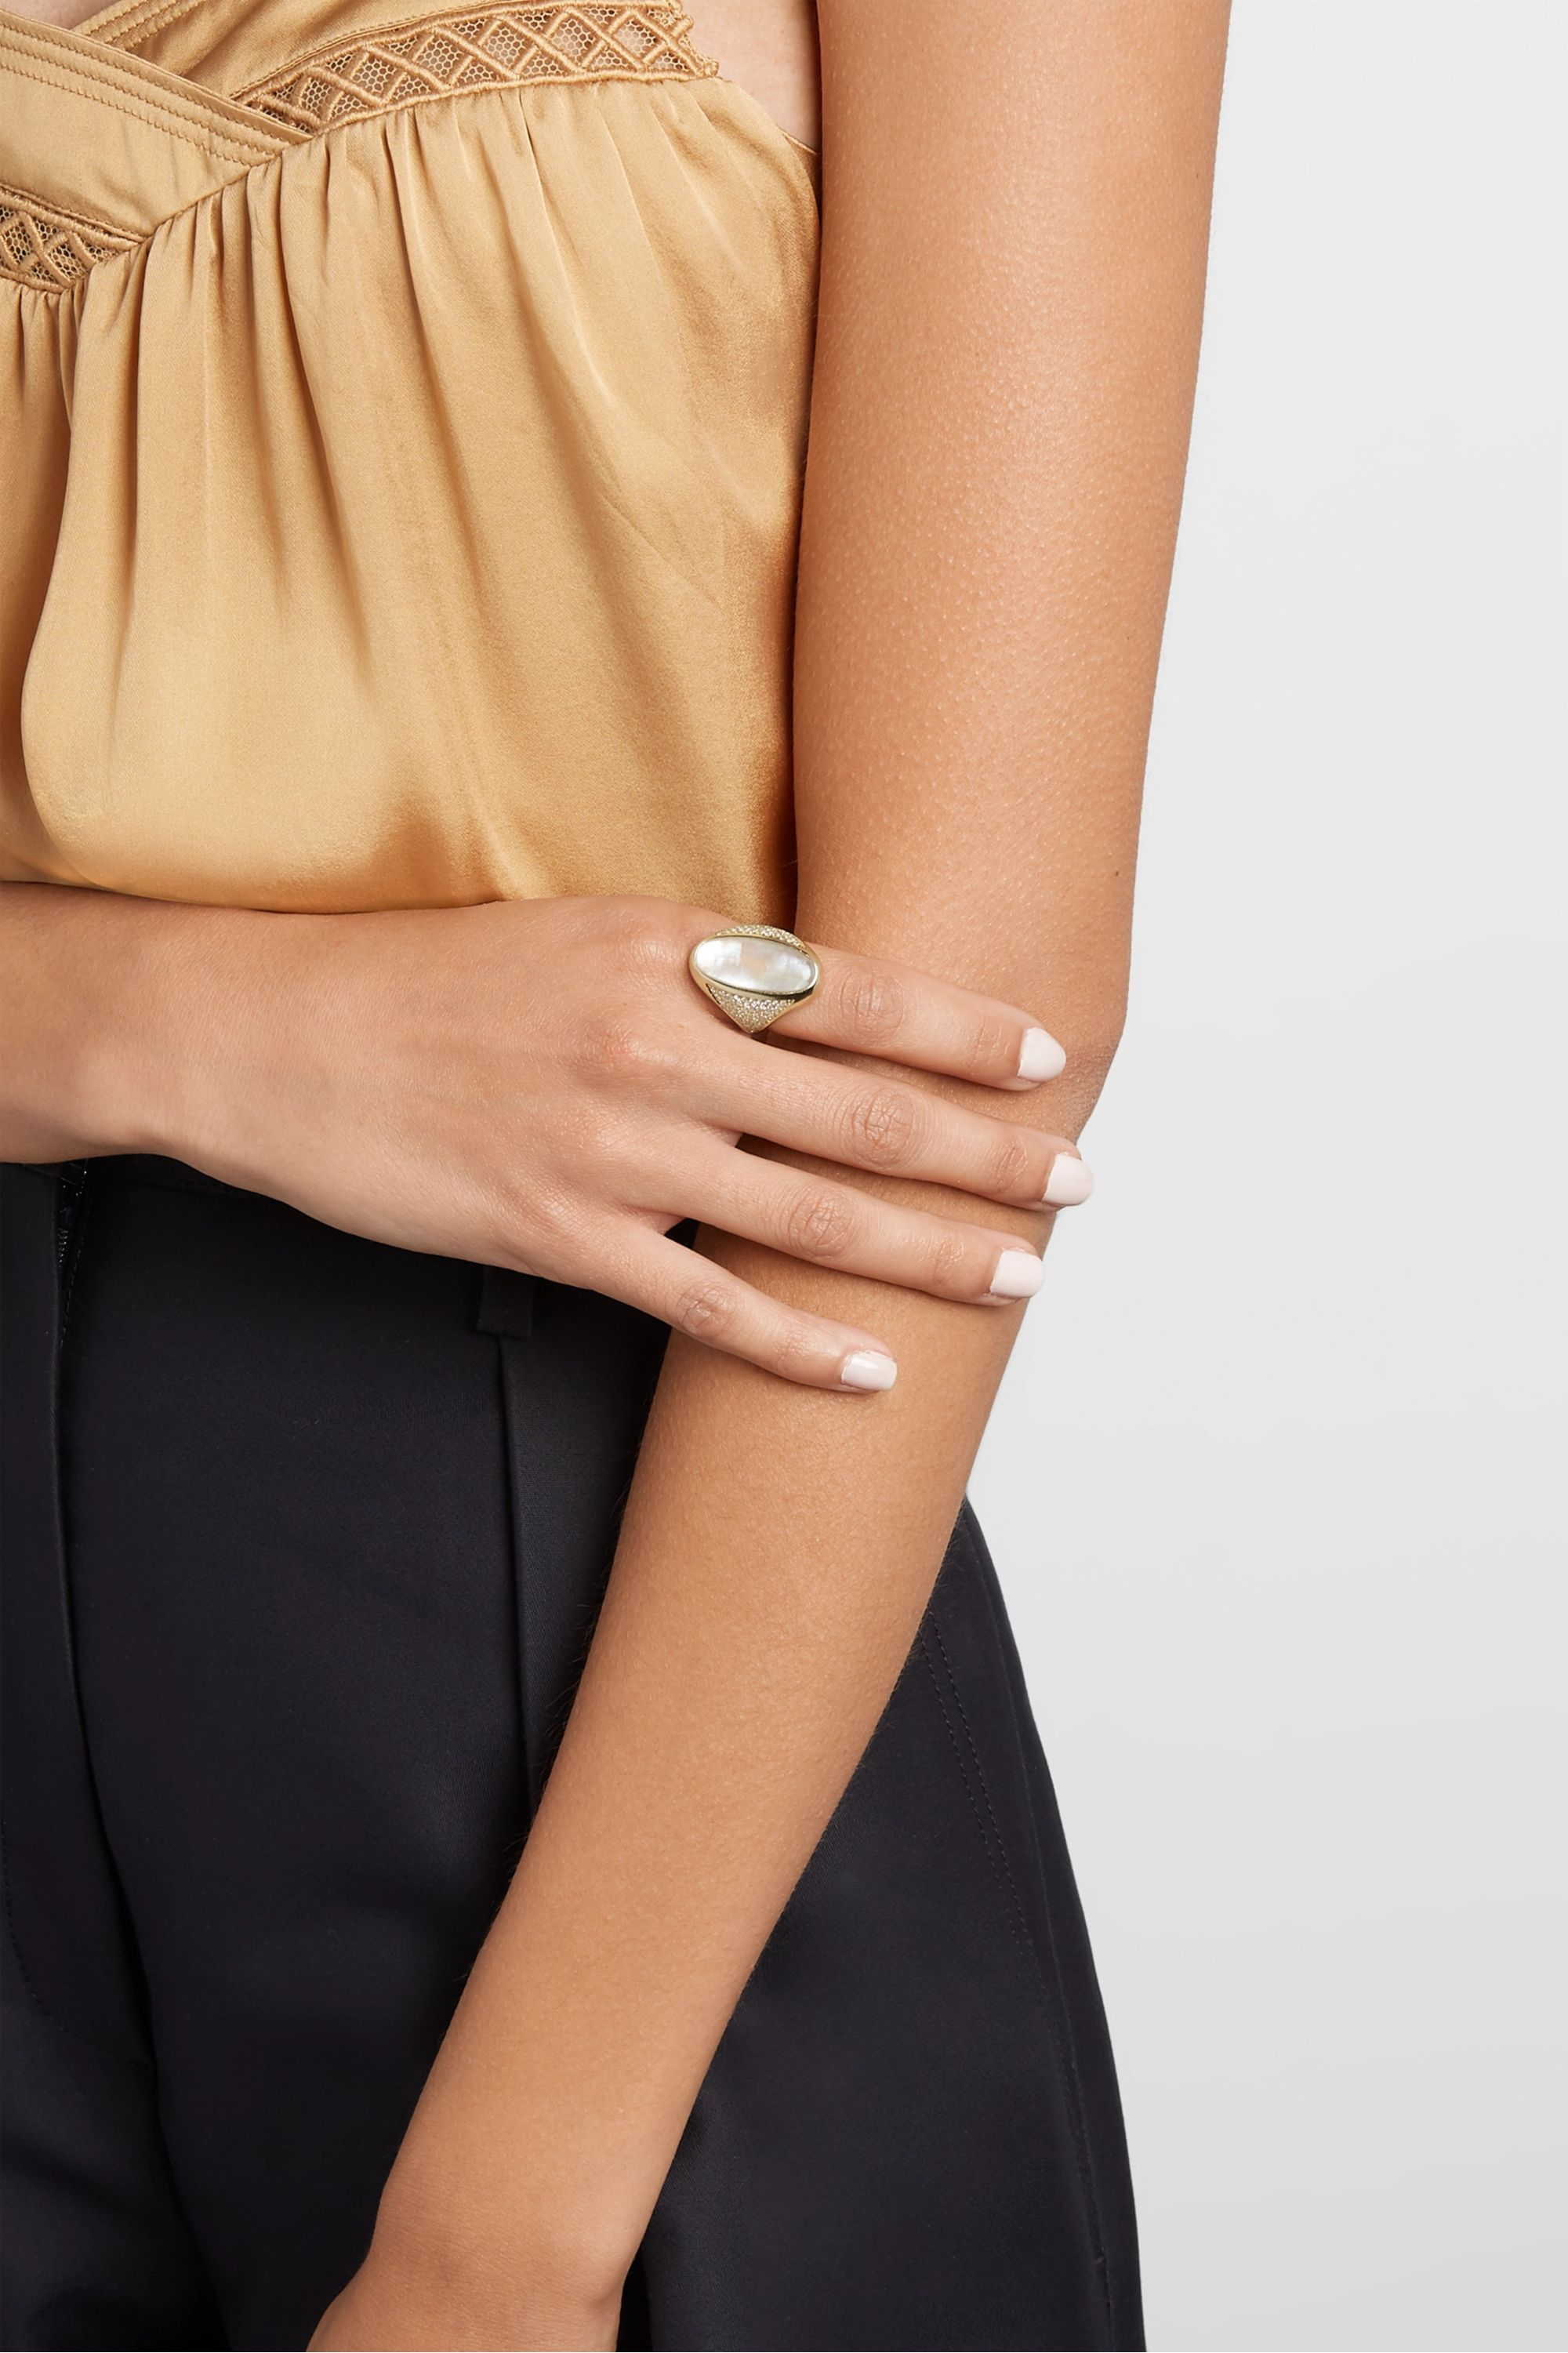 Jacquie Aiche 14-karat gold moonstone and diamond ring